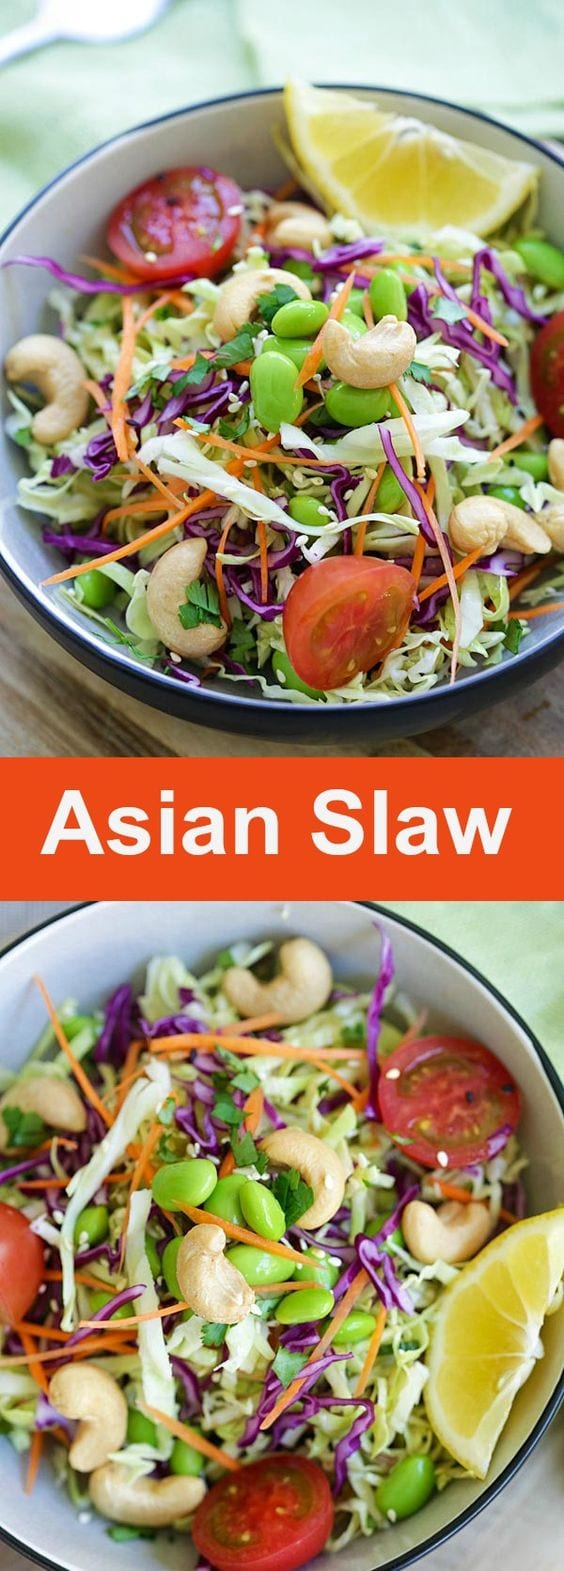 Asian Slaw - delicious Asian slaw recipe with soy sesame dressing. It's easy, low calories and refreshing. Healthy salad for the entire family | rasamalaysia.com